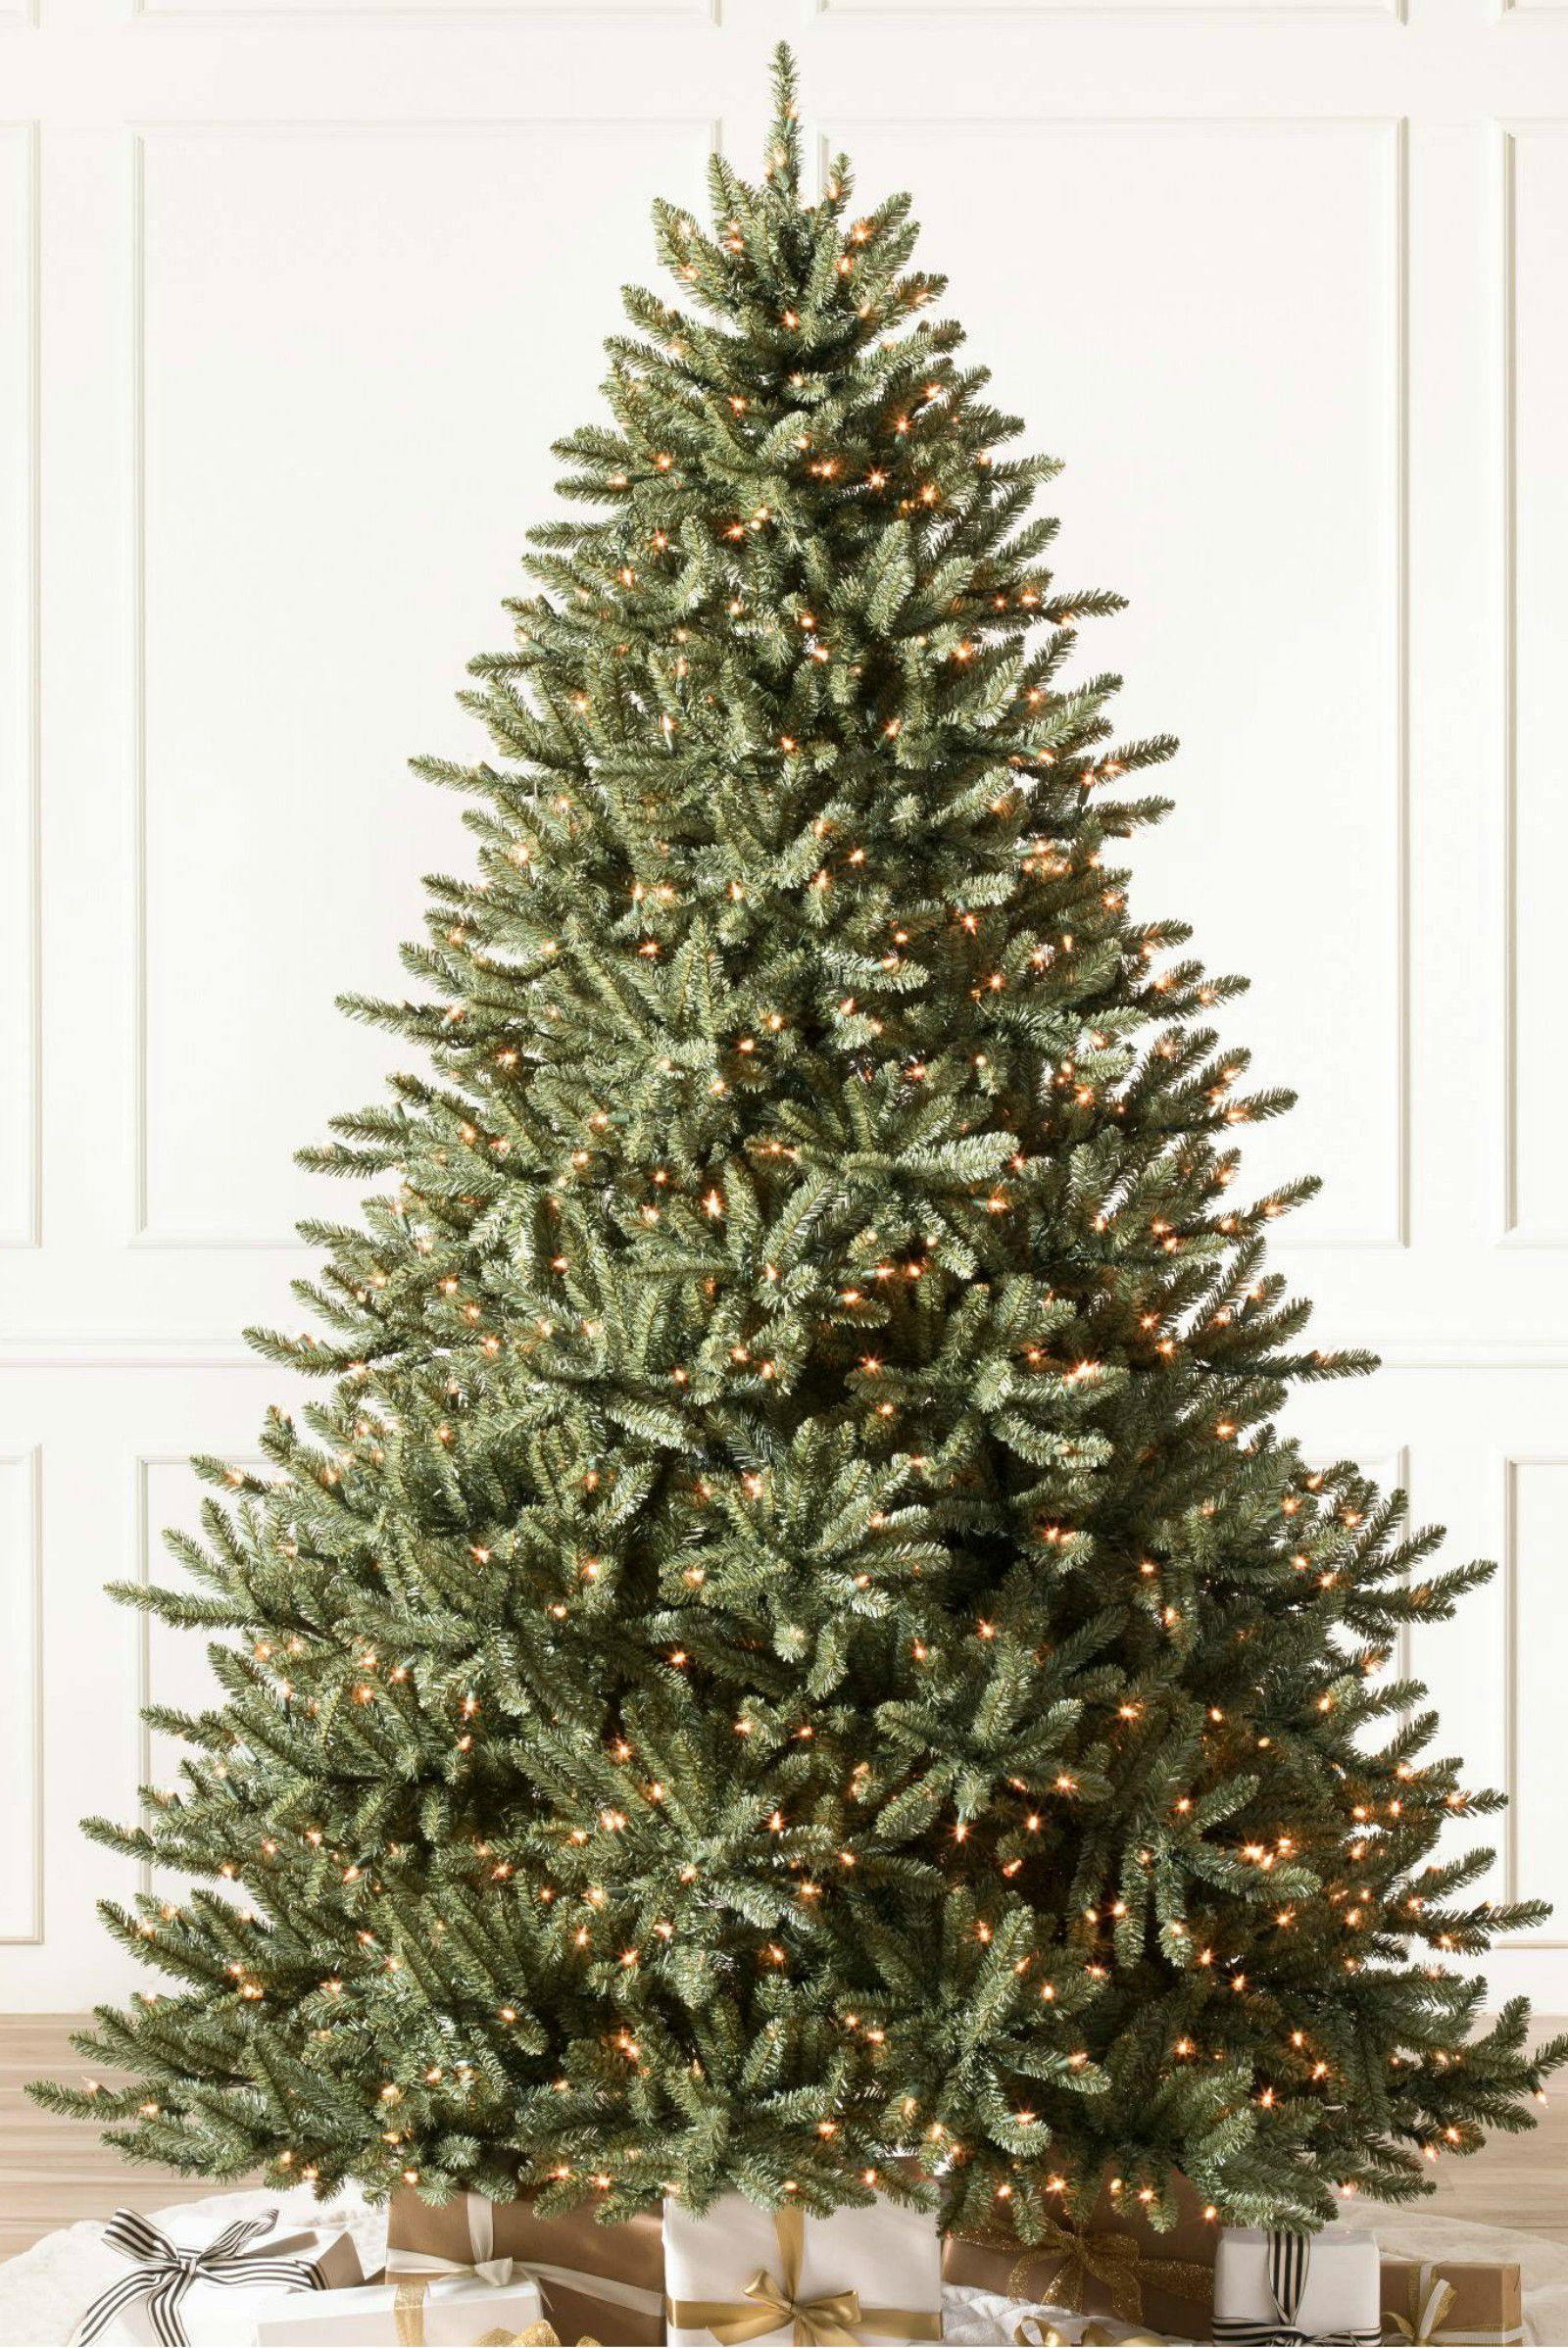 Pictures Of Christmas Trees.Blue Spruce Artificial Christmas Tree